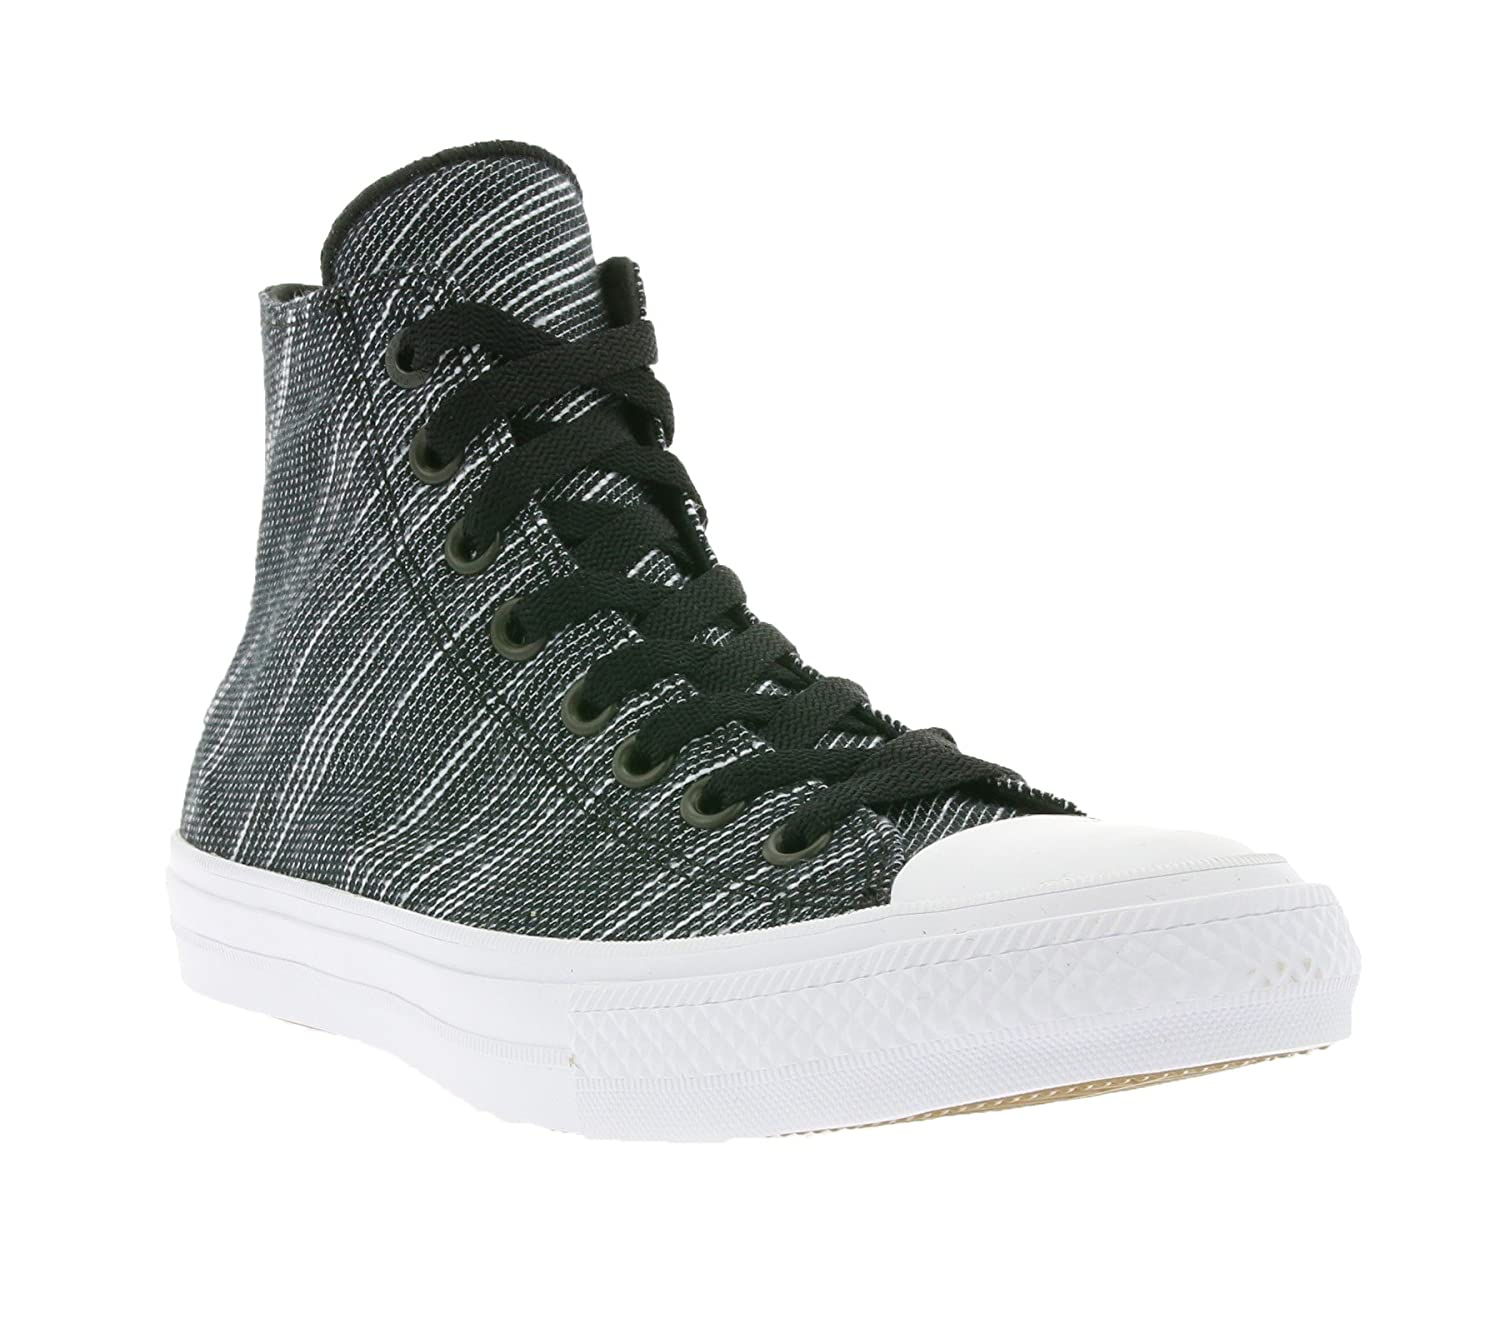 3f35d2ea7327 Converse Chuck Taylor All Star II Knit Hi Black White Navy Textile Athletic  Shoes